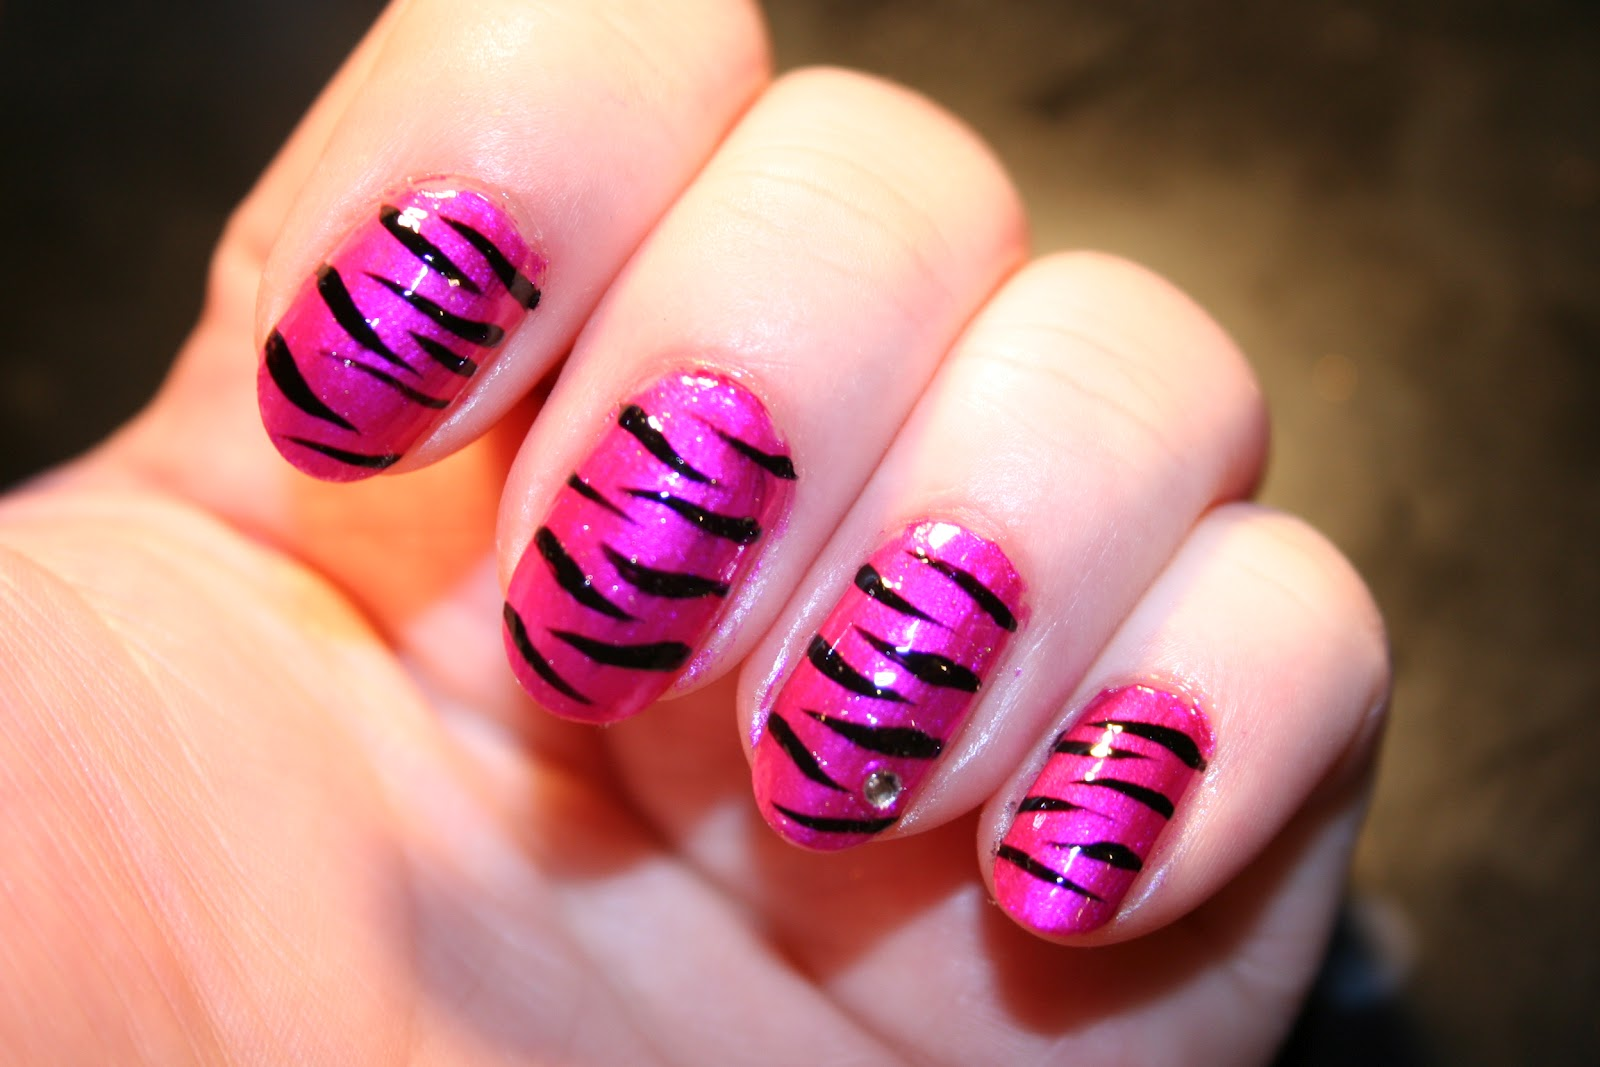 Pictures Of Simple Nail Art Designs With Nail Art Pen Kidskunstfo